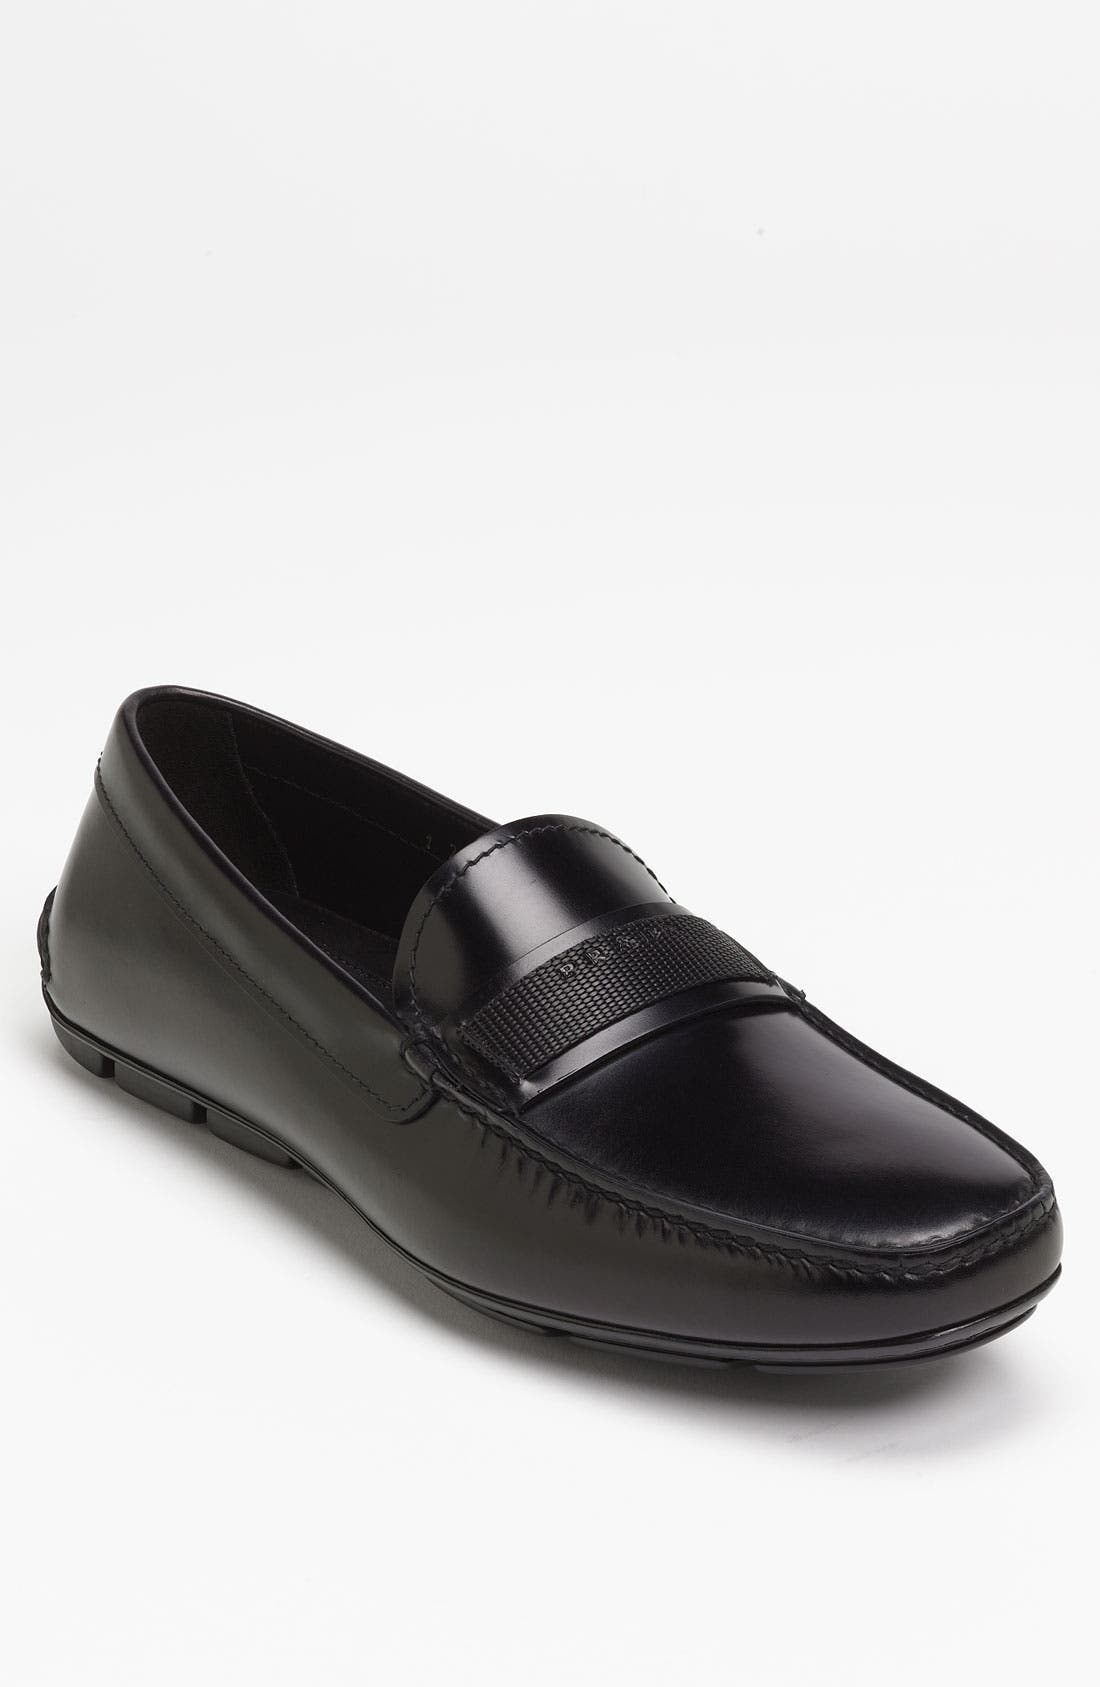 Alternate Image 1 Selected - Prada Driving Moccasin